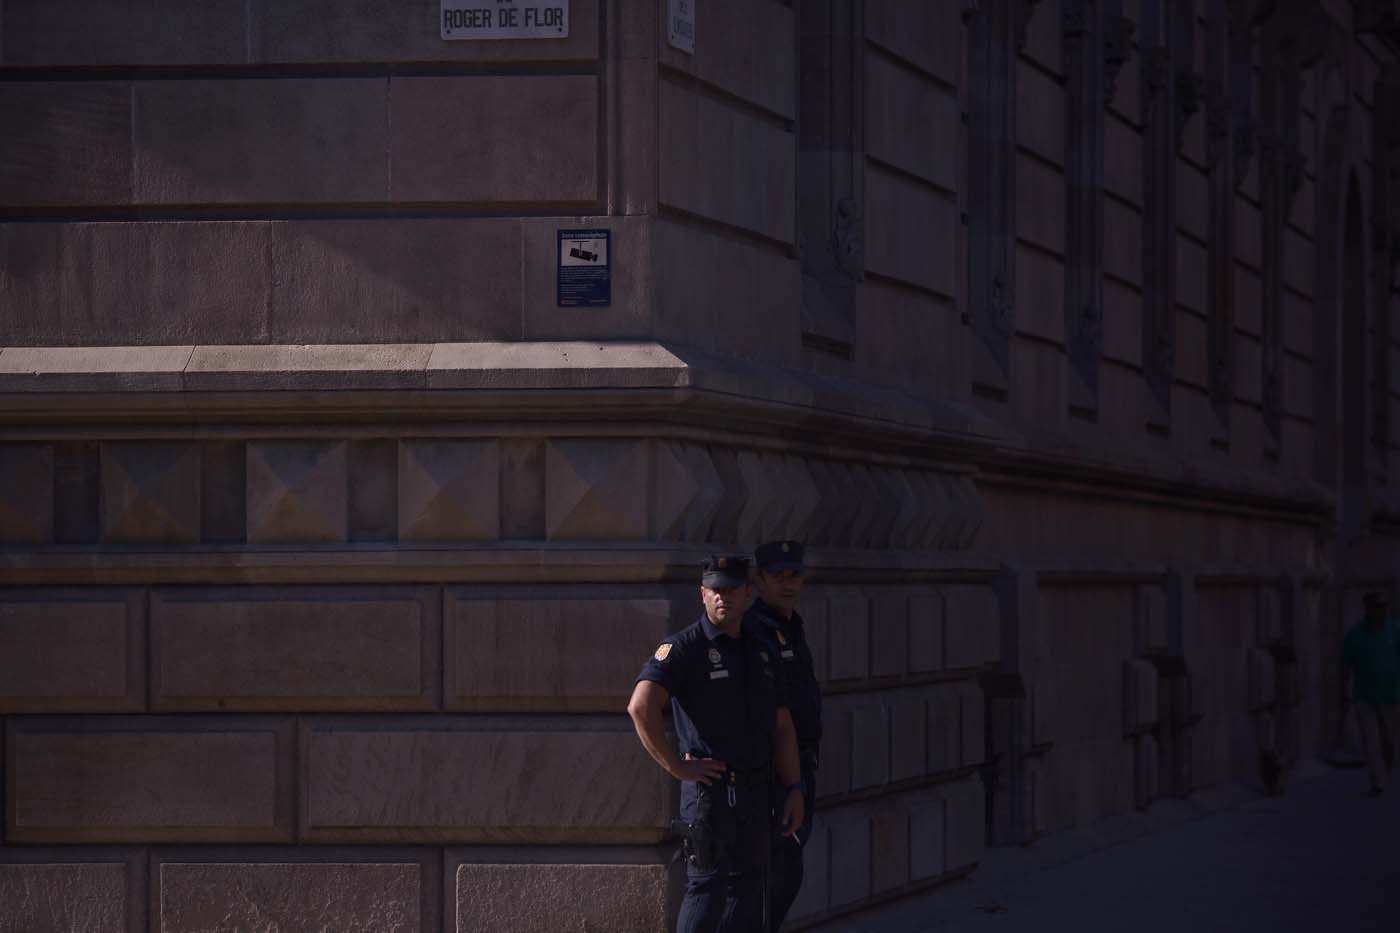 Police officers stand guard outside the High Court of Catalonia in Barcelona on October 10, 2017. Spain's worst political crisis in a generation will come to a head as Catalonia's leader could declare independence from Madrid in a move likely to send shockwaves through Europe. / AFP PHOTO / Jorge GUERRERO